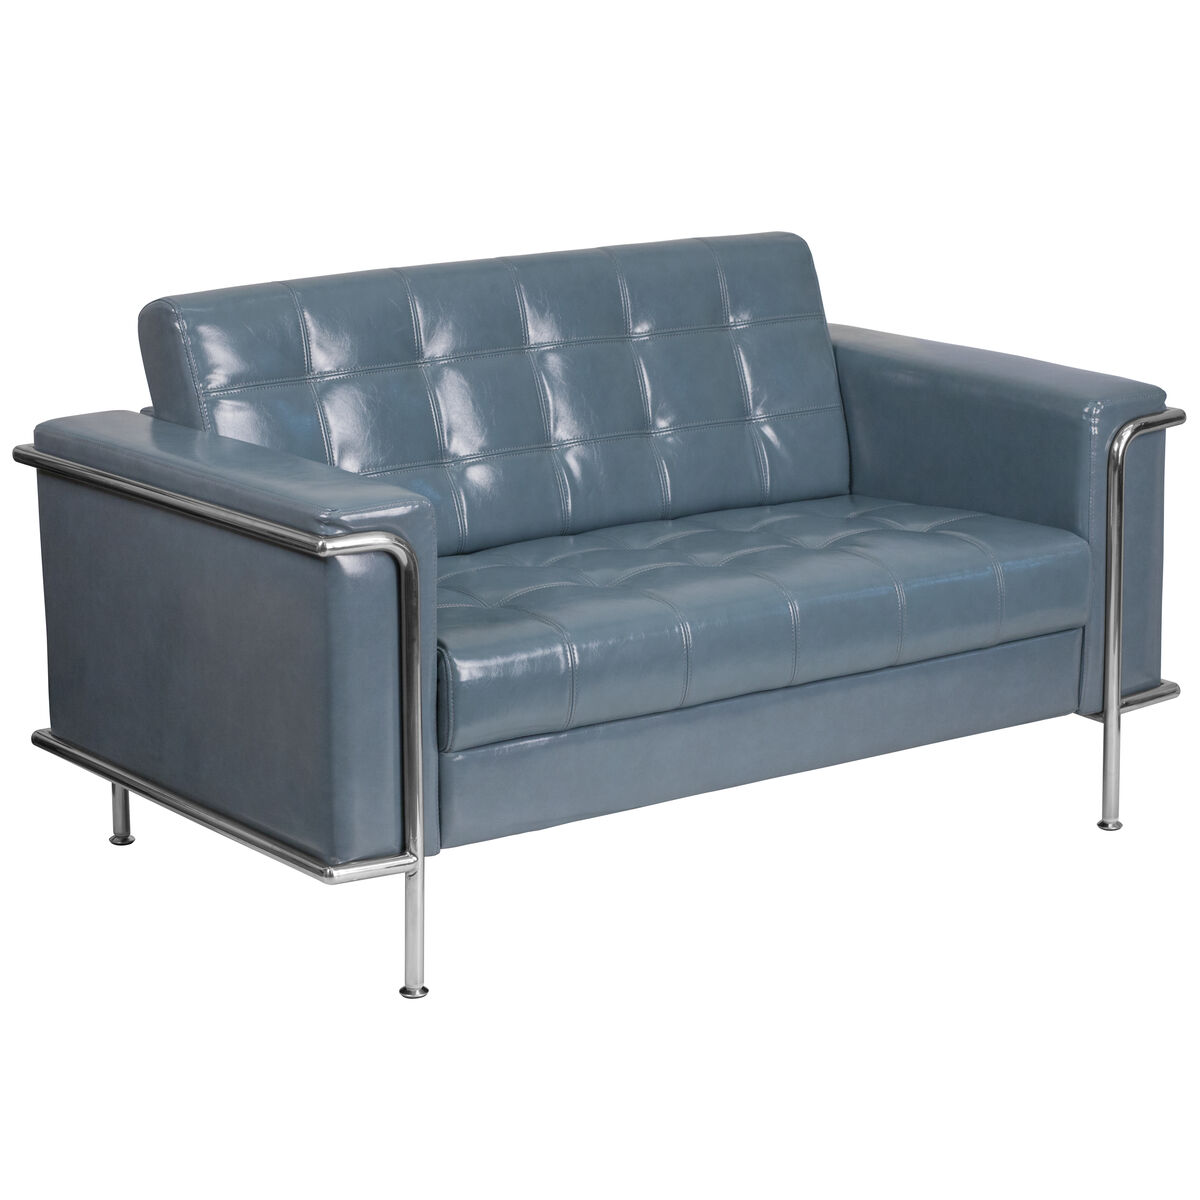 Hercules Lesley Series Contemporary Gray Leather Loveseat